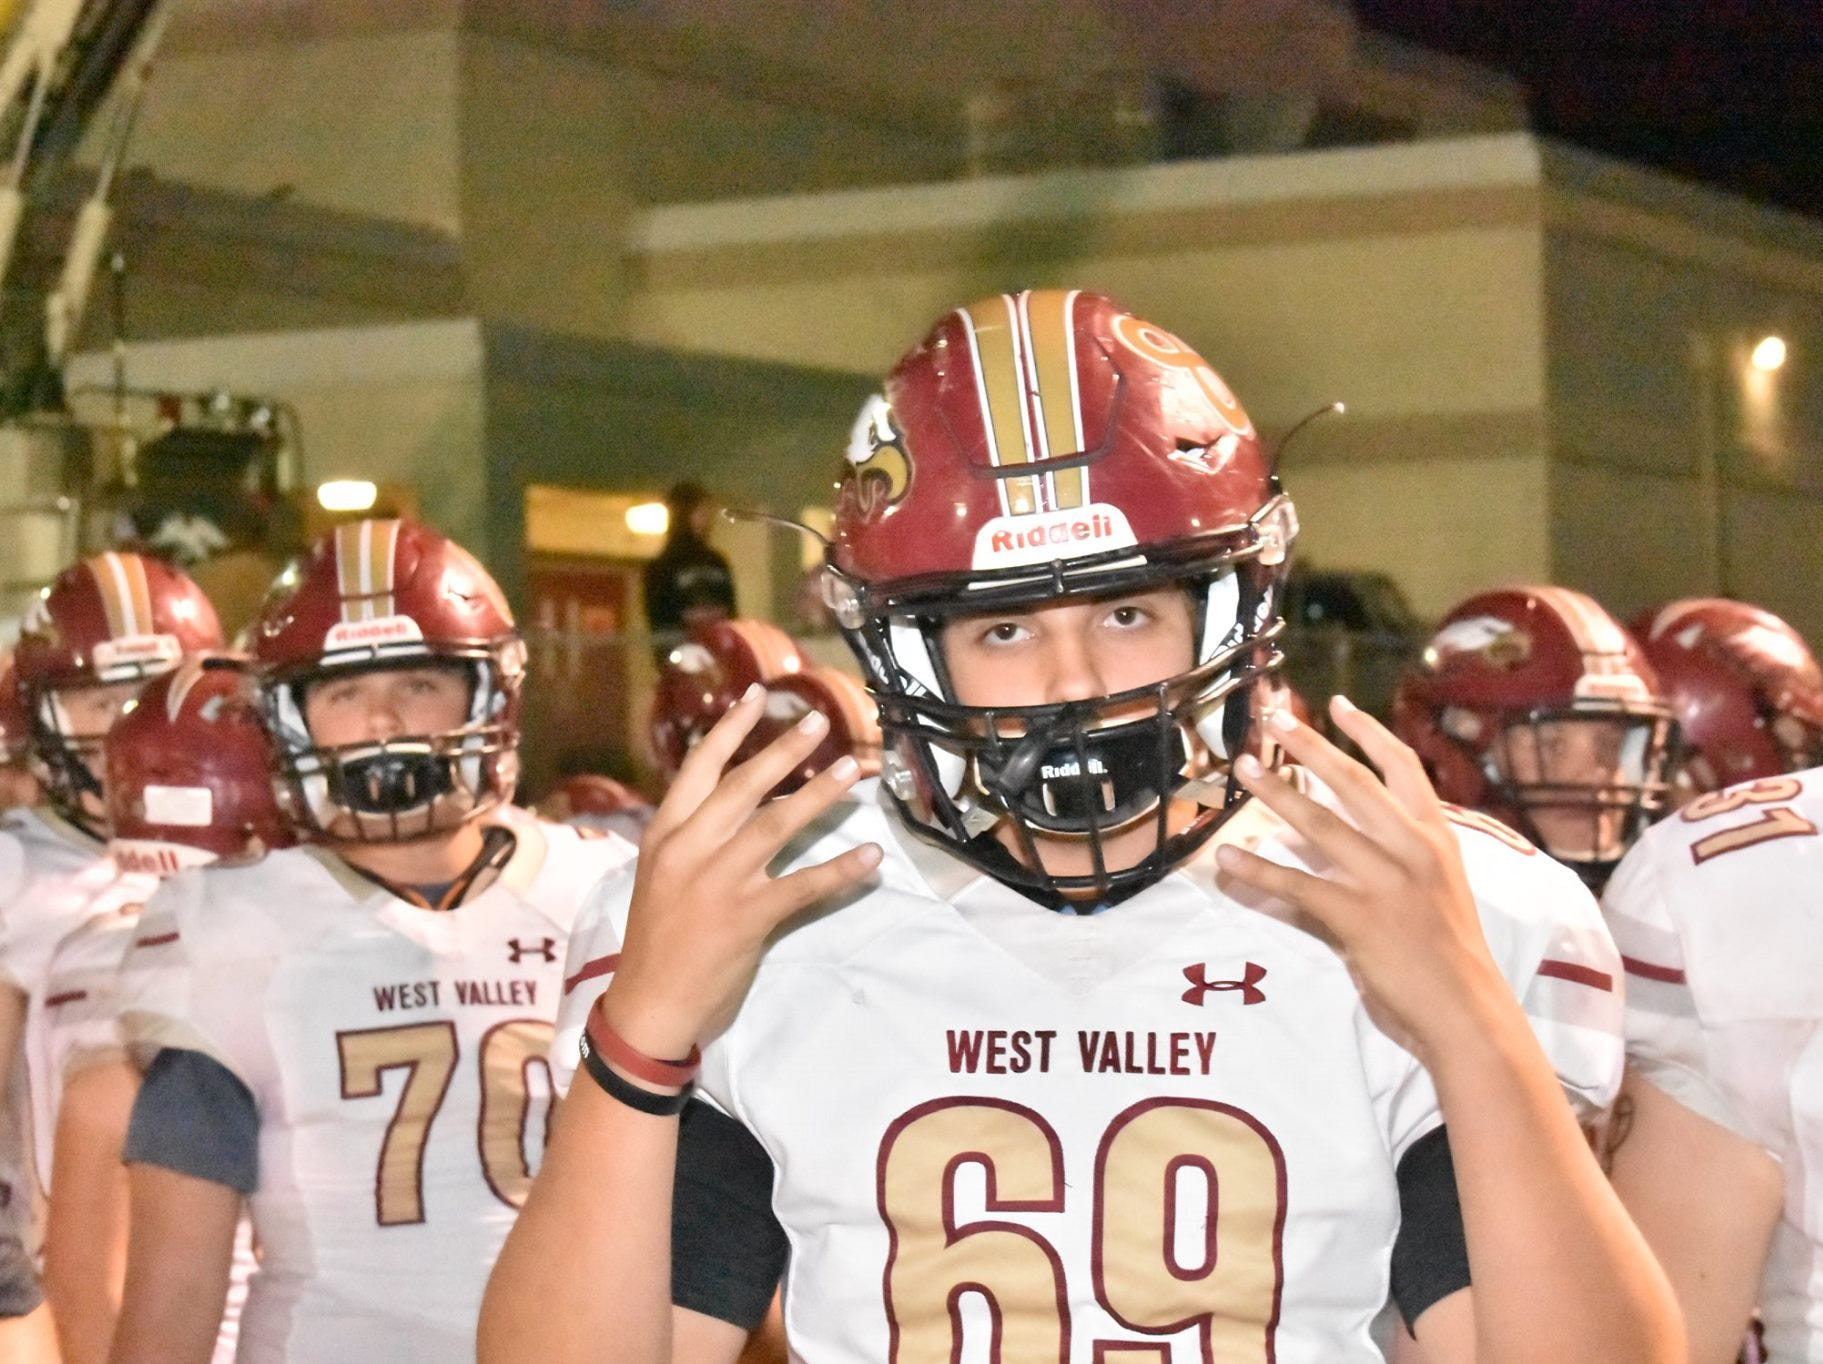 West Valley's Ethan Croup holds up eight fingers to honor Tyson Wacker on Friday, Oct. 19, before a game against Corning. Wacker, a junior defensive end, was injured in a vehicle crash on Oct. 18  died as a result of his injuries the following Monday.